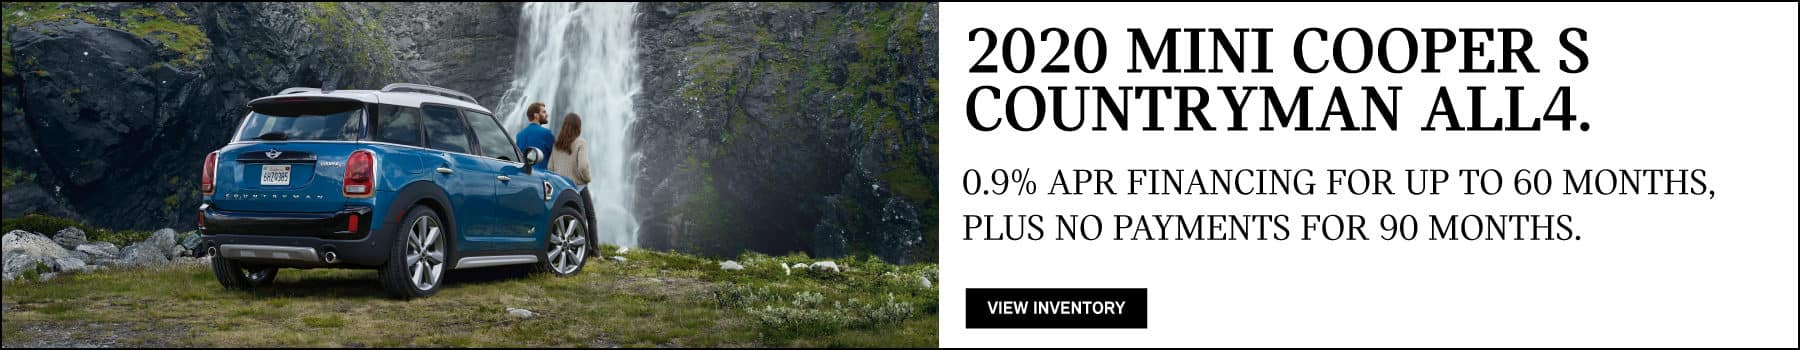 2020 MINI COOPER S COUNTRYMAN ALL4. 0.9% APR financing for up to 60 months, plus no payments for 90 days.